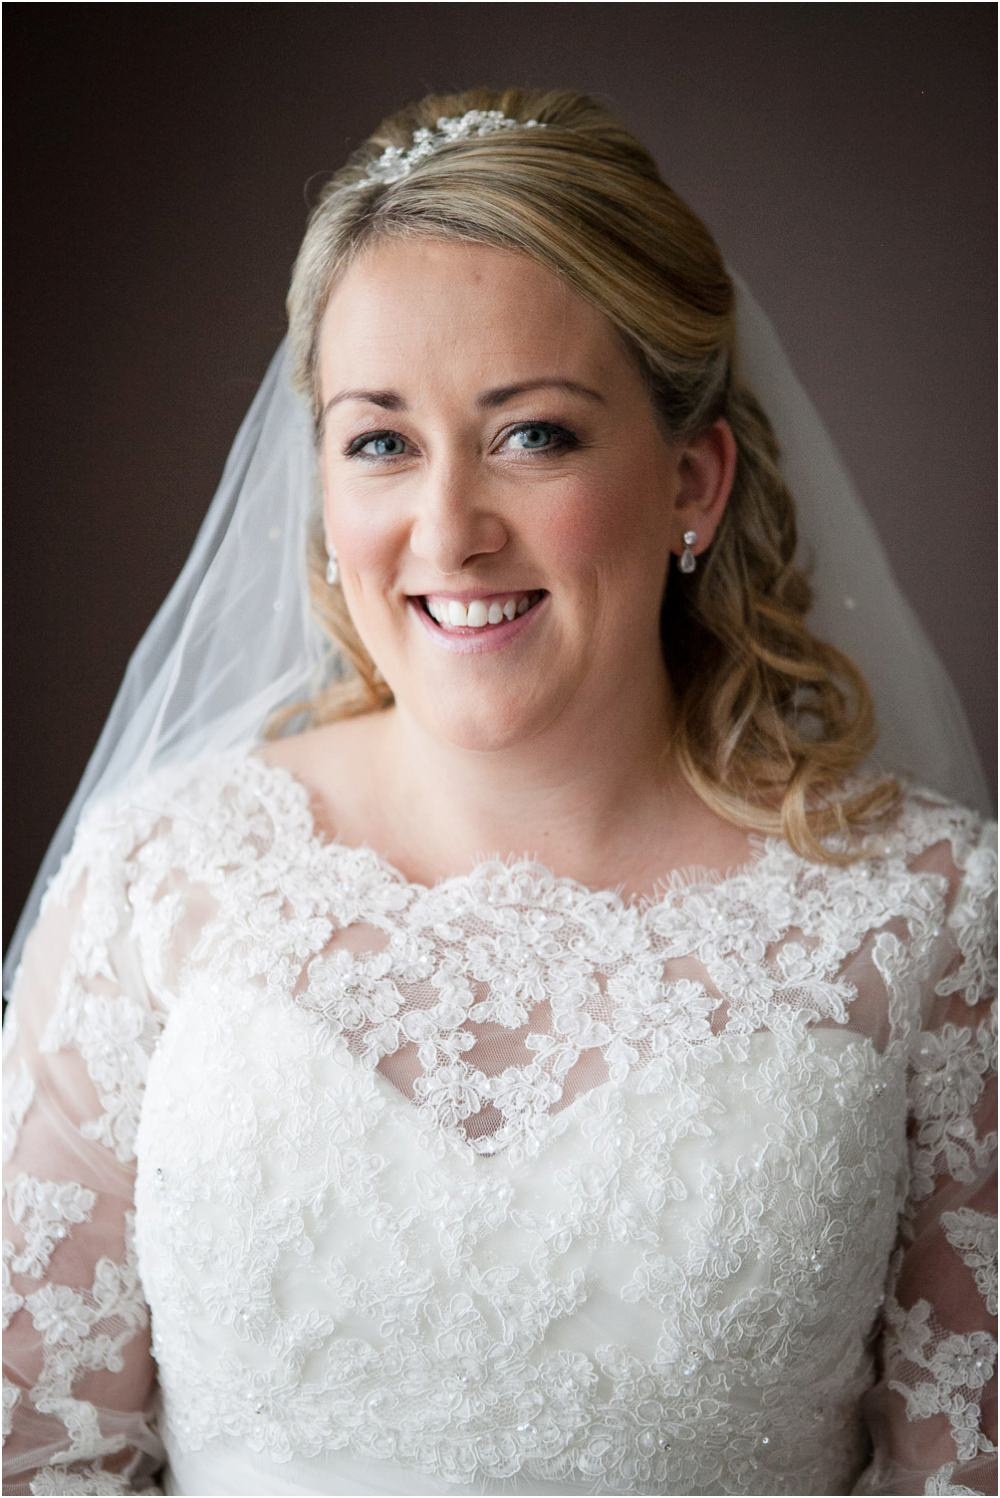 oldwalls-wedding-photographer-021